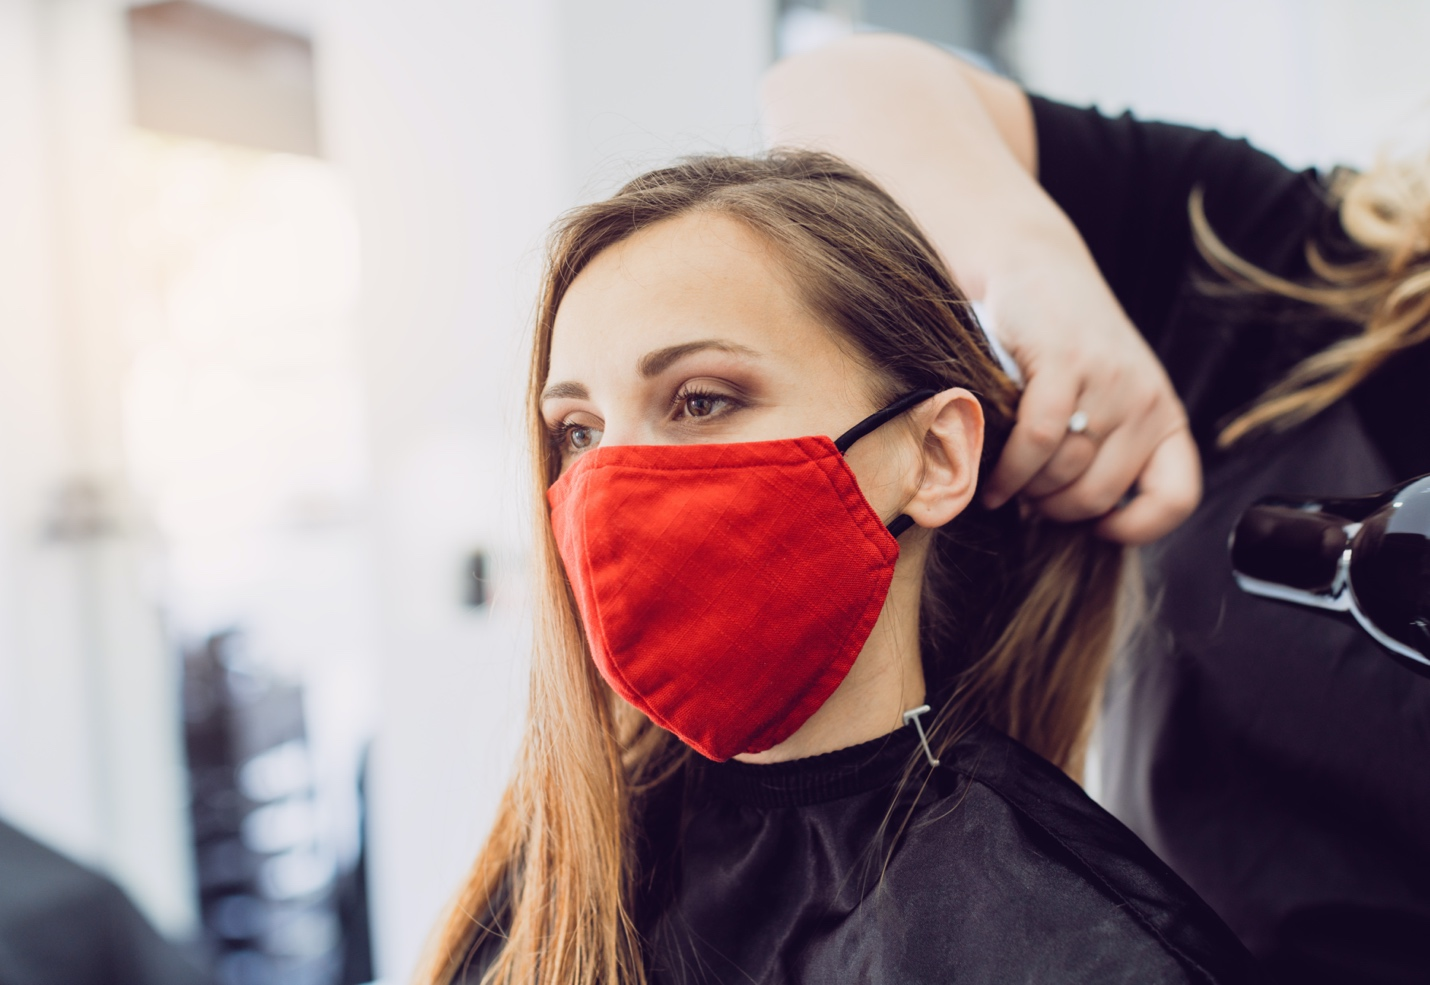 Hairstyles To Wear With Your Face Mask